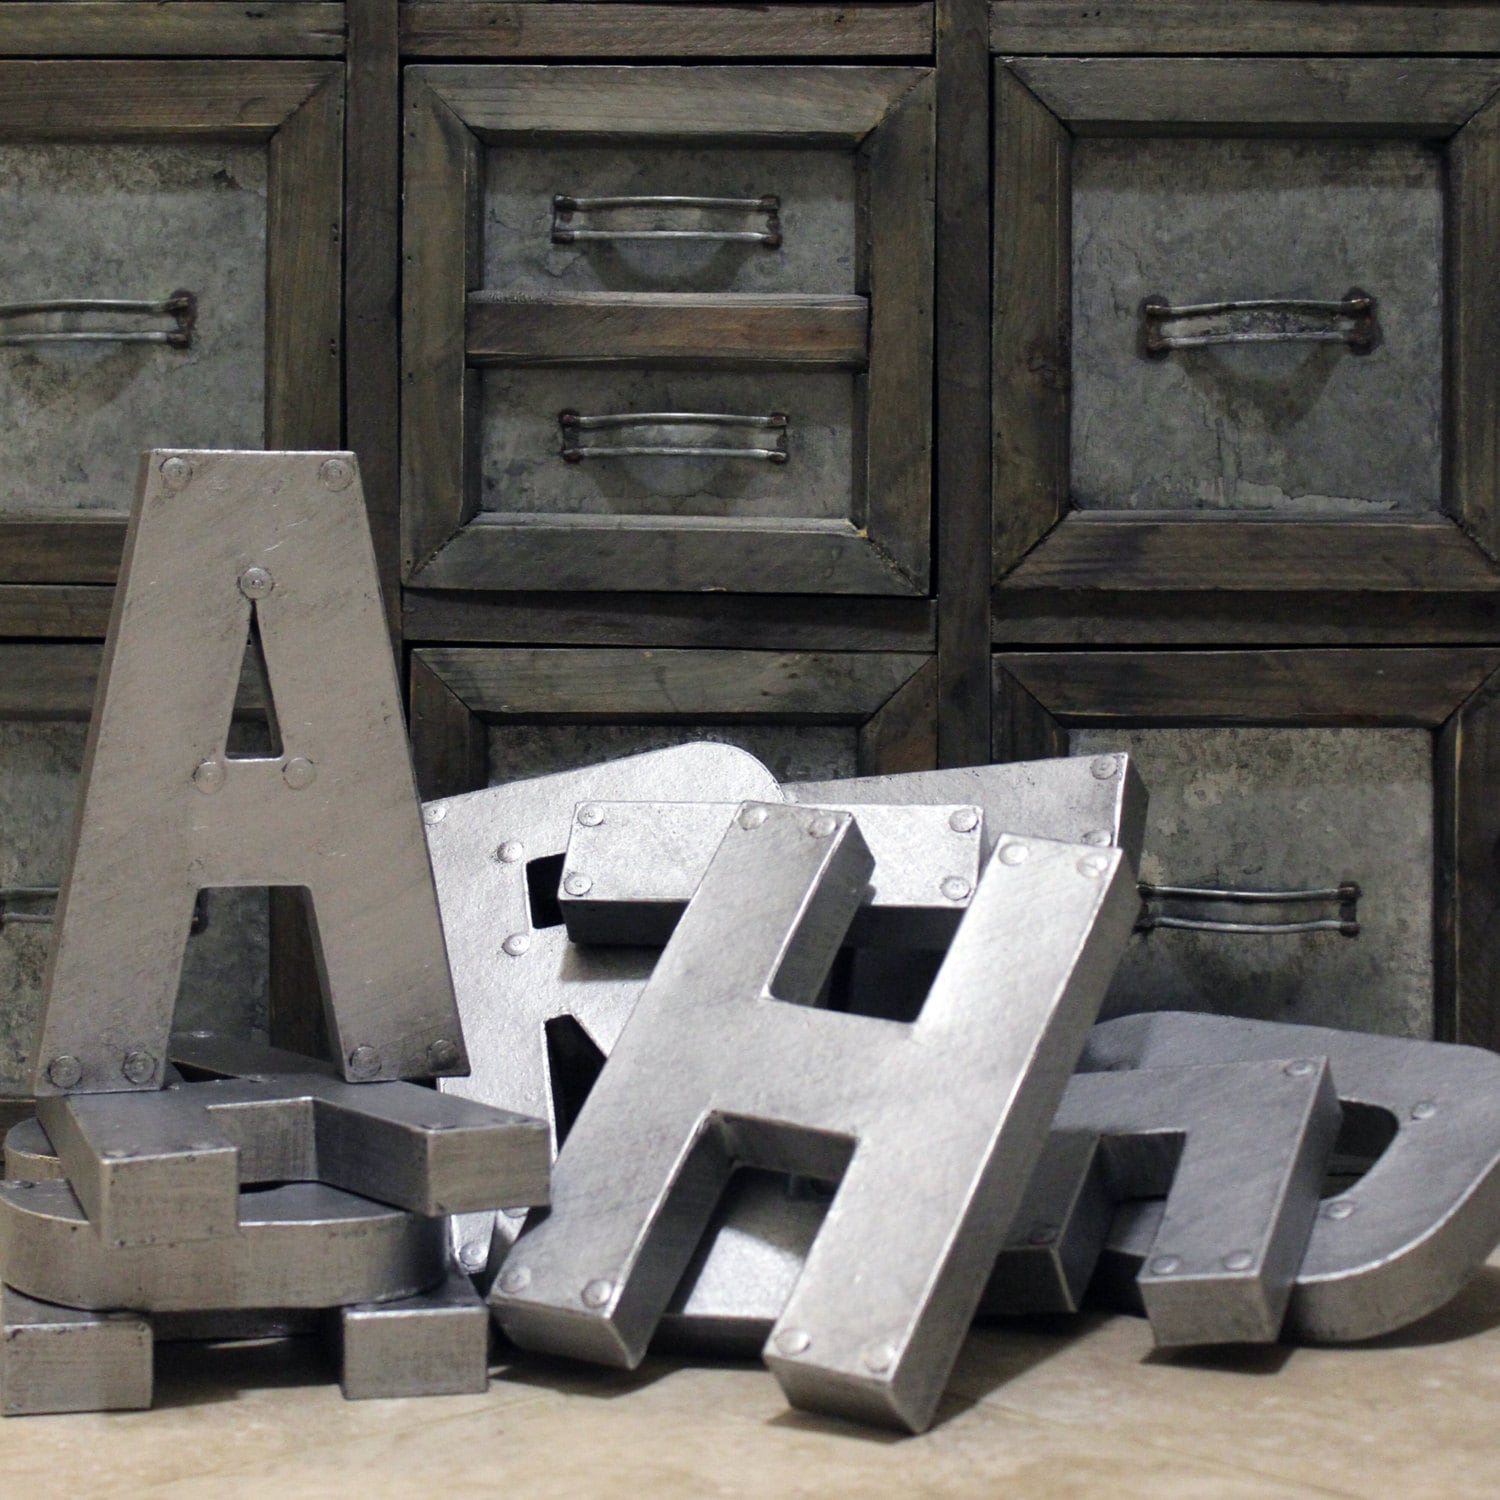 Small Decorative Metal Letters Industrial Zinc Faux Metal Letters And Numbers 8 Or